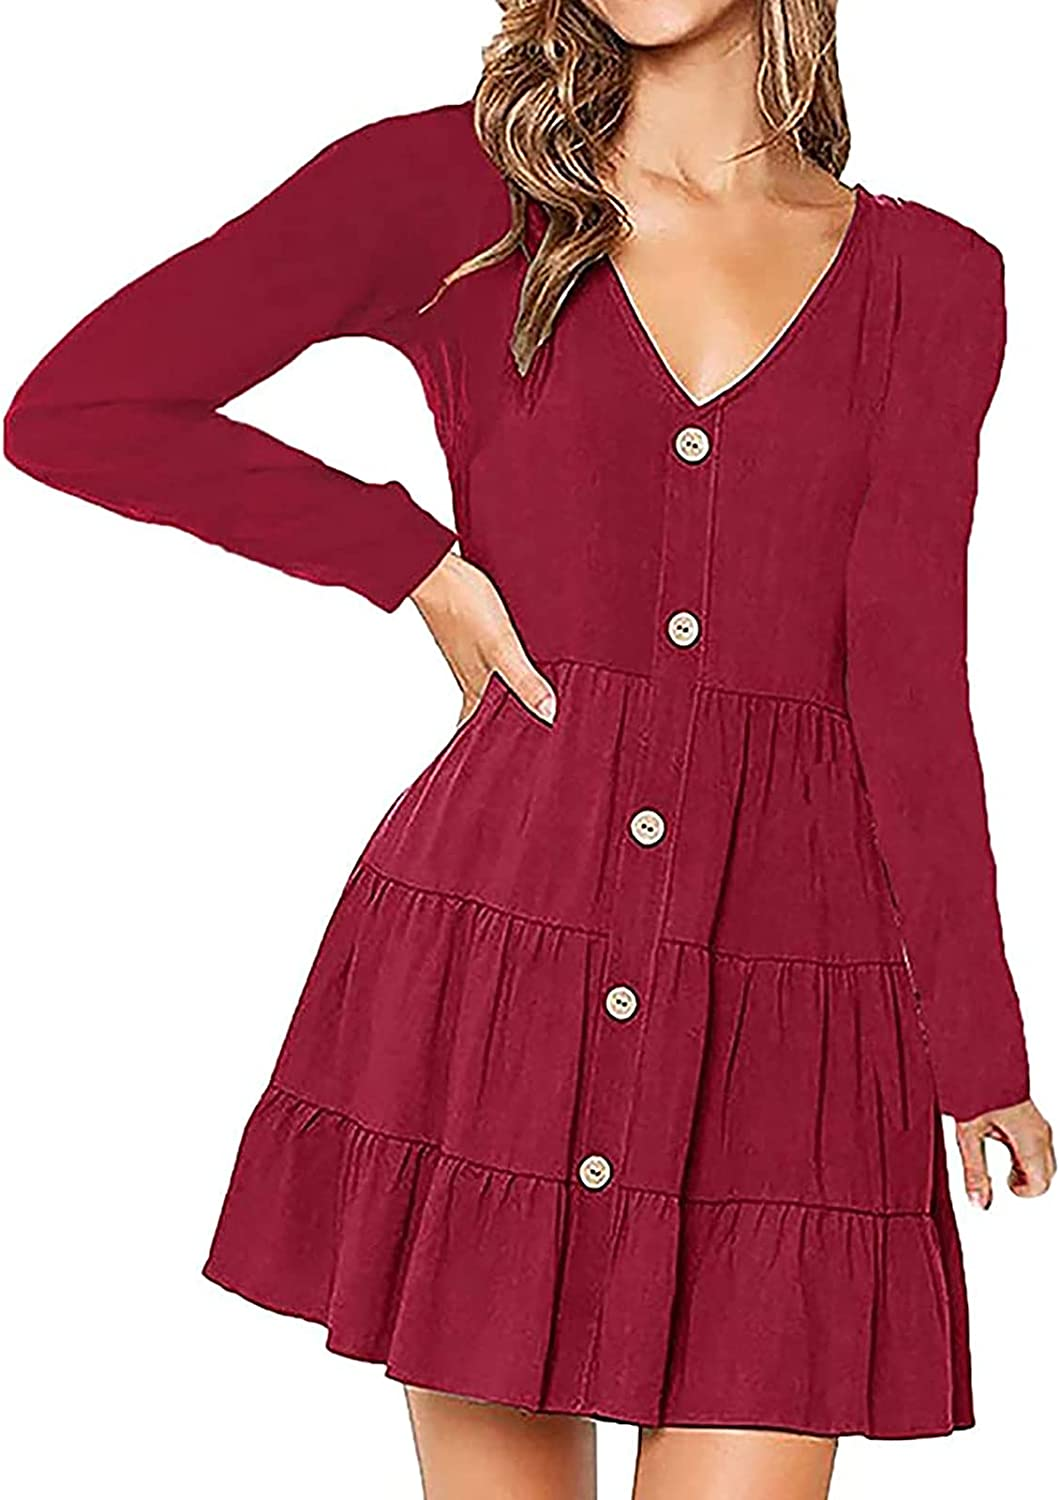 Women Casual V Neck Long Sleeve Fall Dresses, Vintage Fashion Decorative Button 90s Flowy Smocked Pullover Tshirt Dress